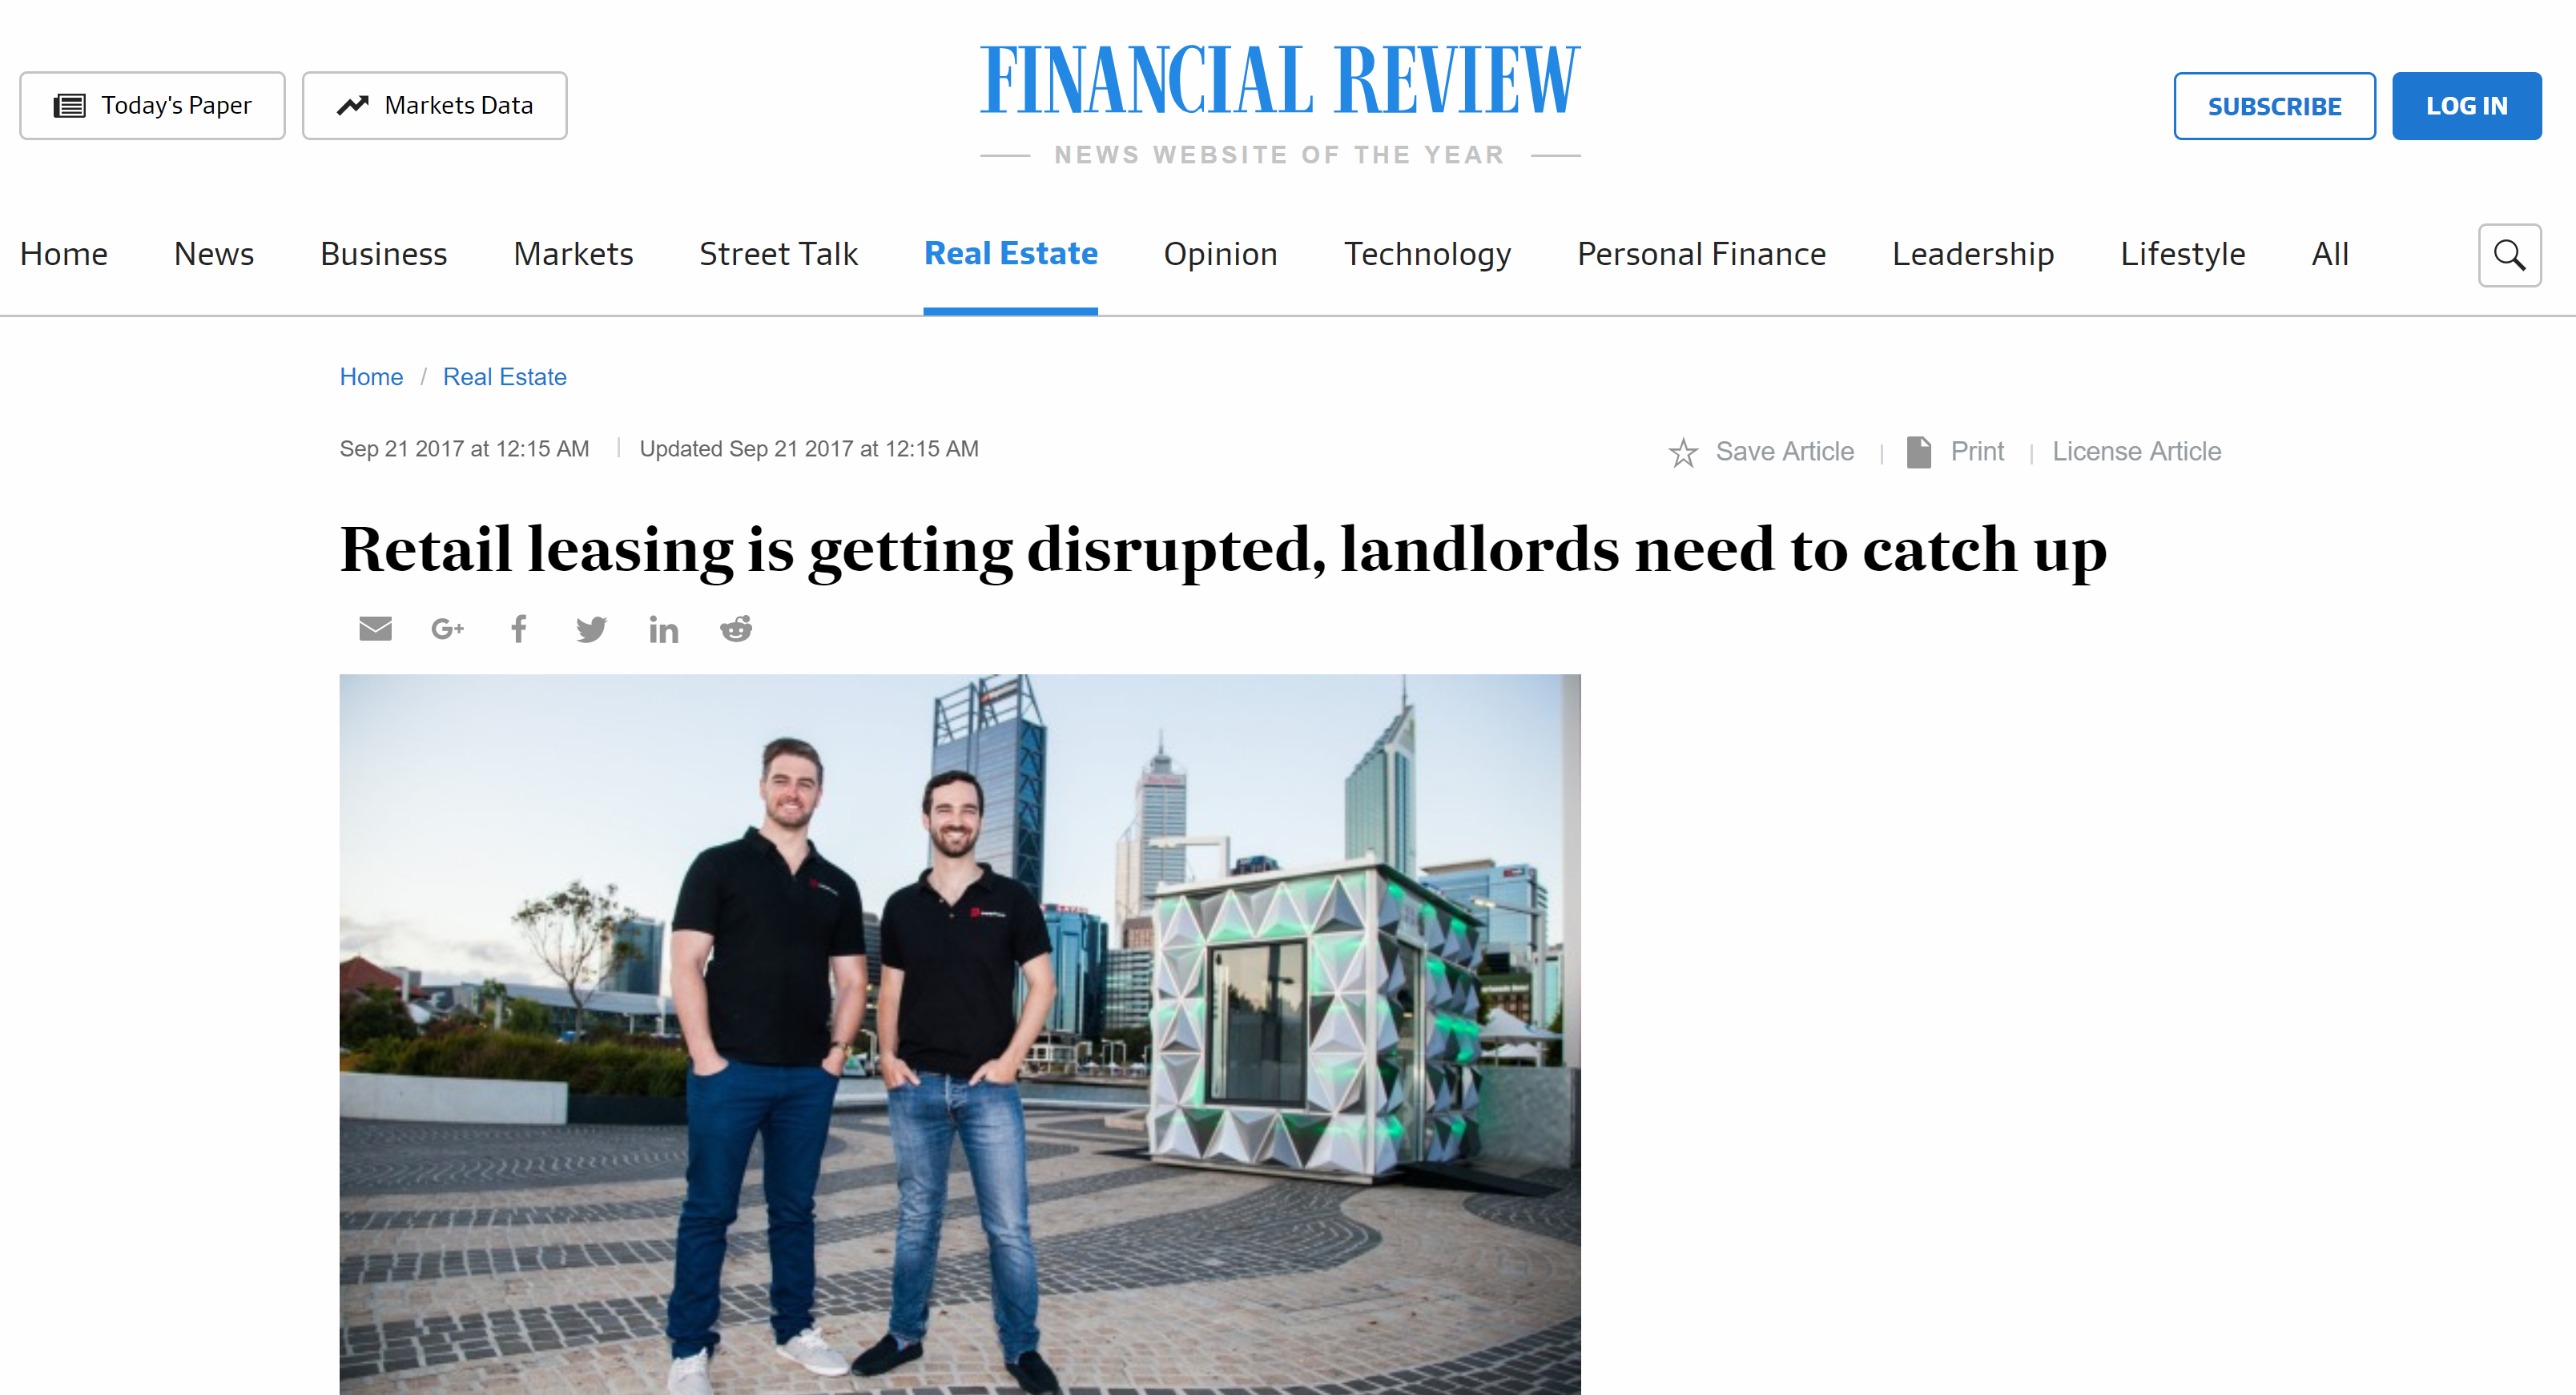 Australian Financial Review - Popupshopup